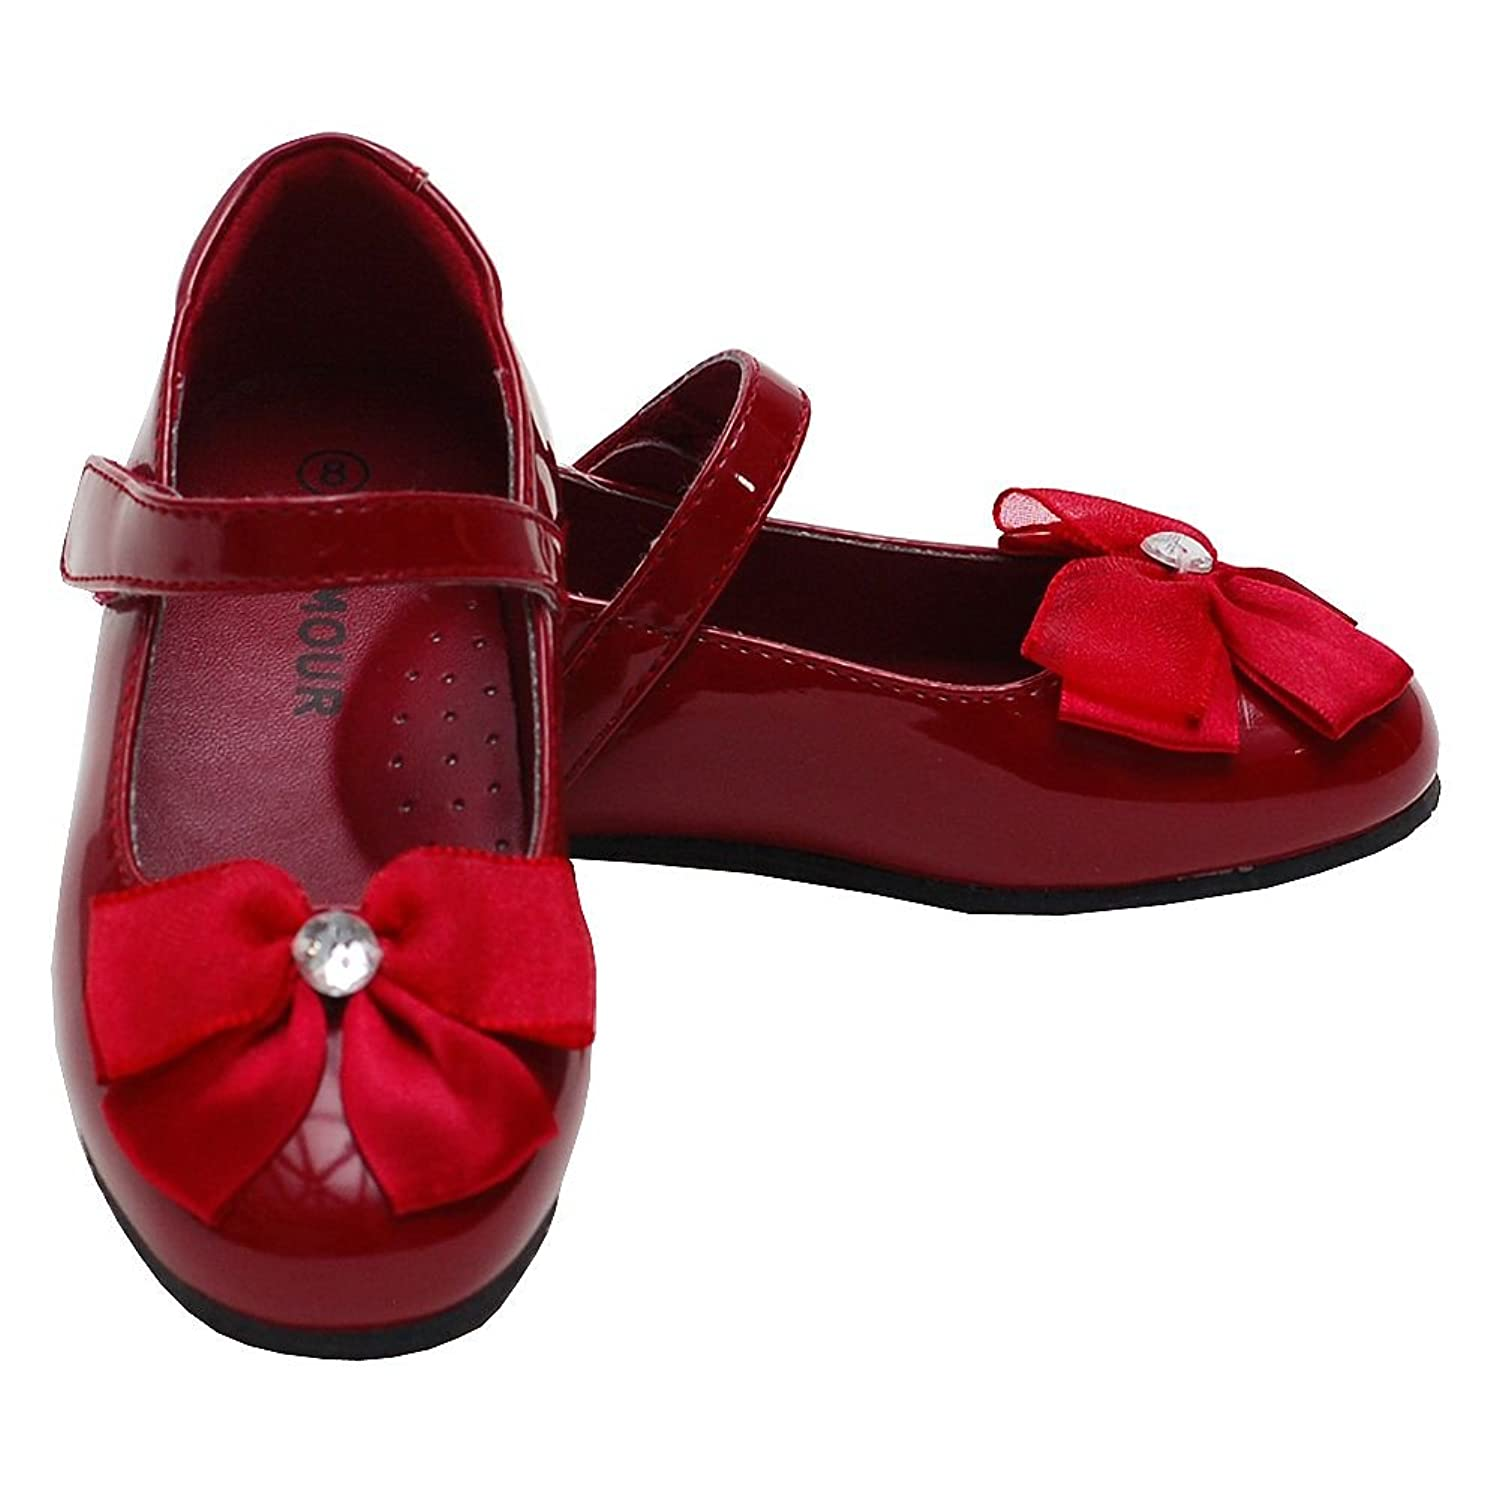 Red Dress Shoes Girls Pixshark